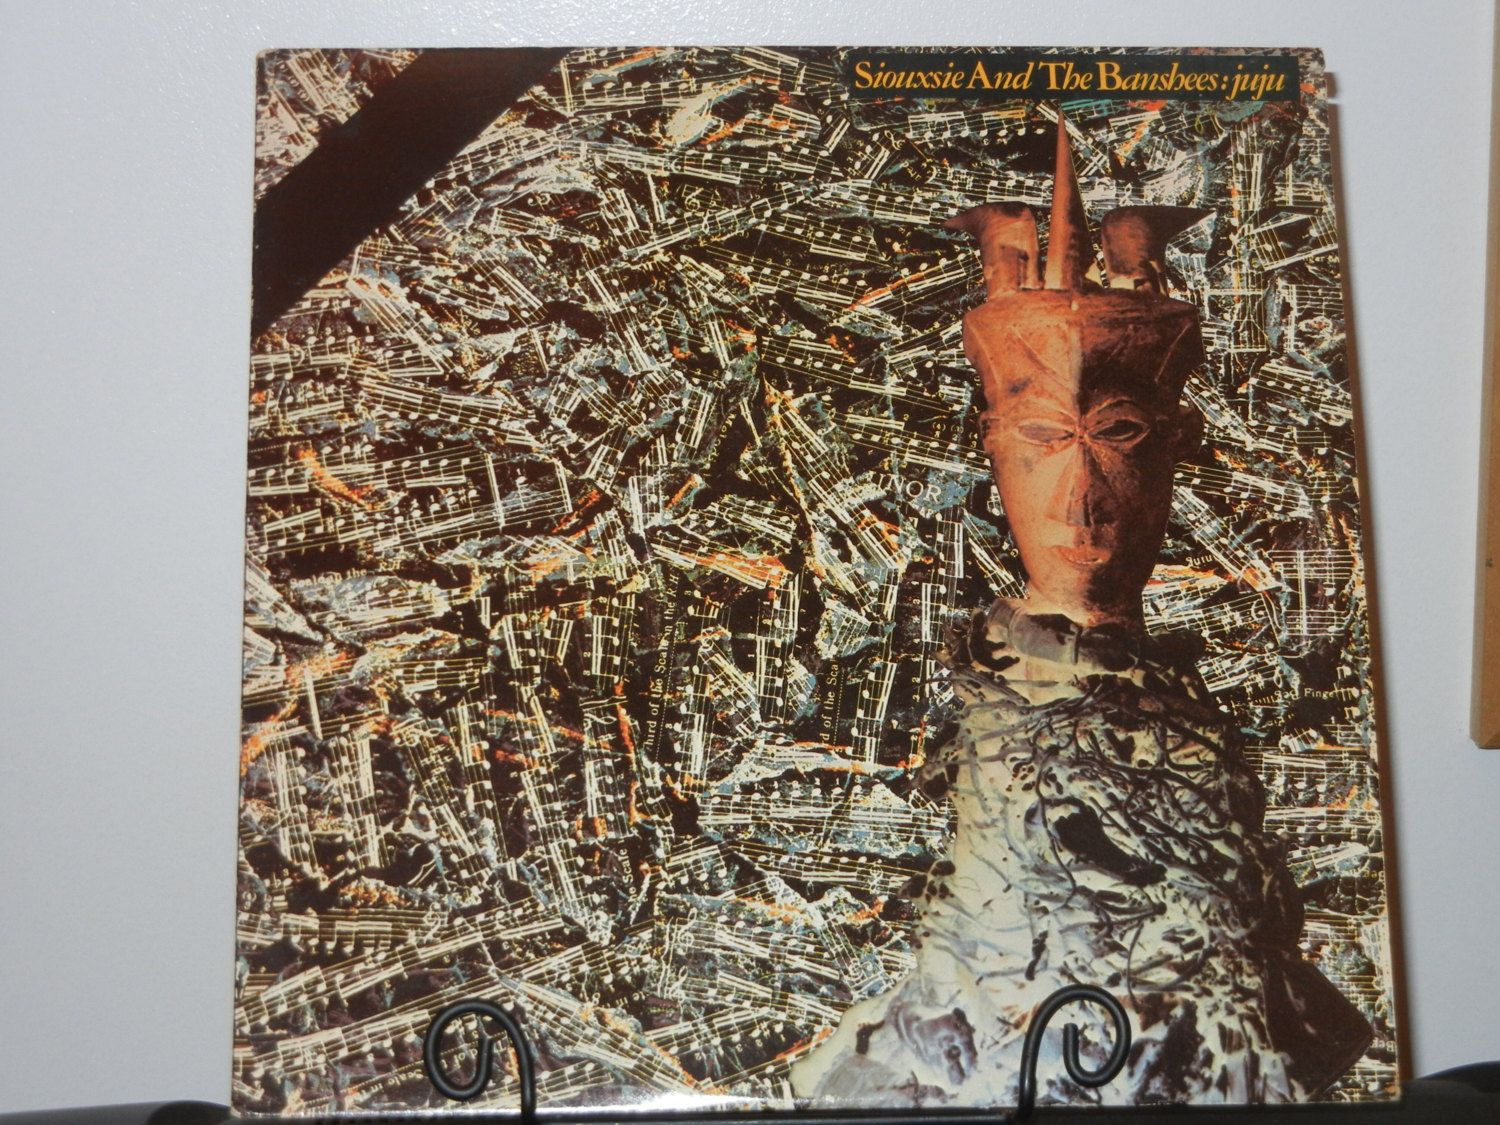 Siouxsie and the Banshees Juju Album from 1981 Vintage Vinyl  I love the 80's…